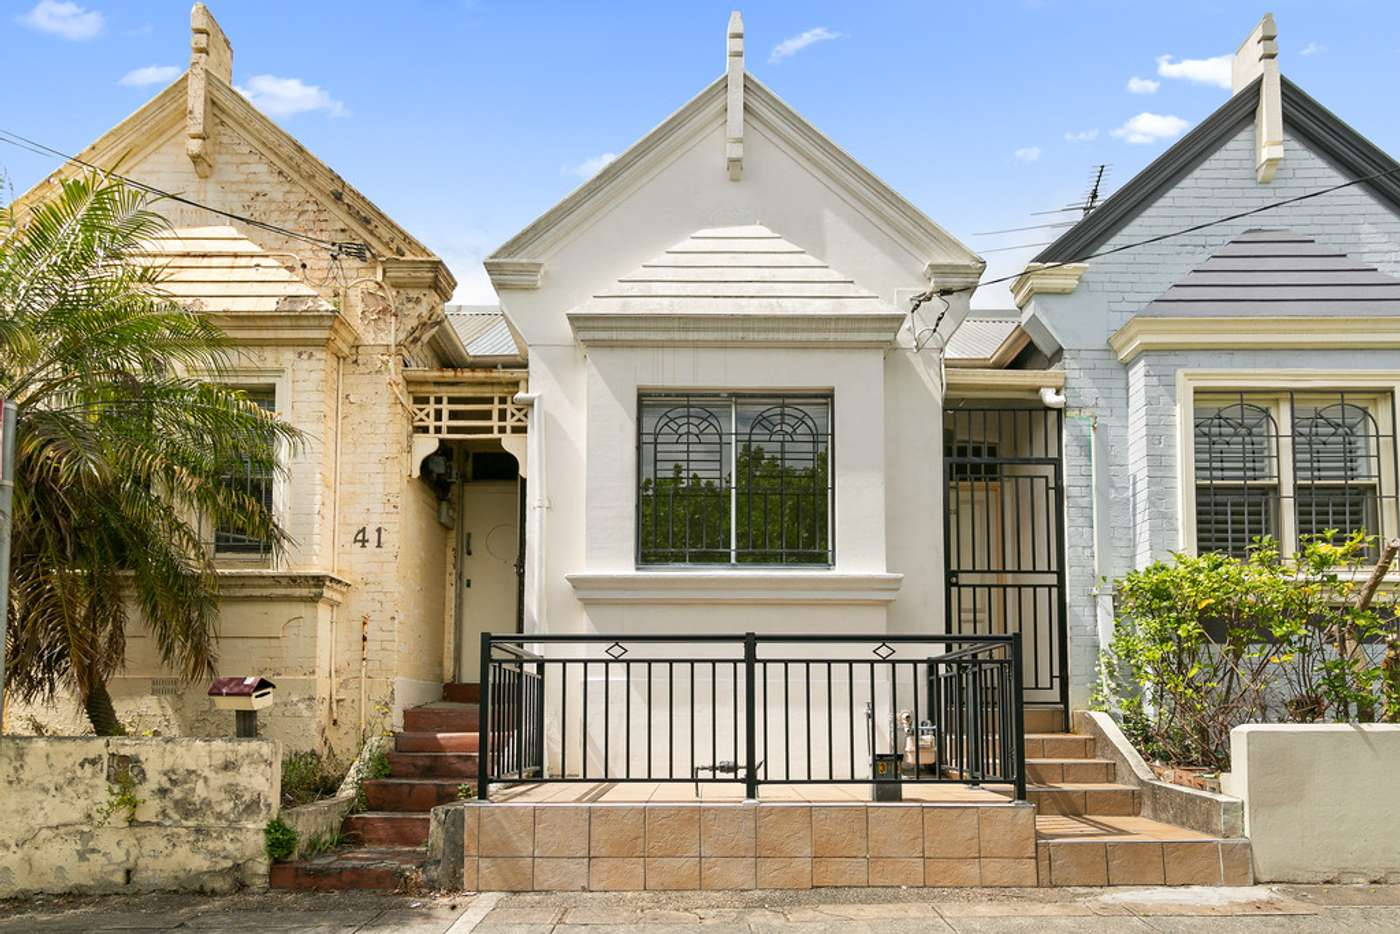 Main view of Homely house listing, 39 Campbell St, Newtown NSW 2042